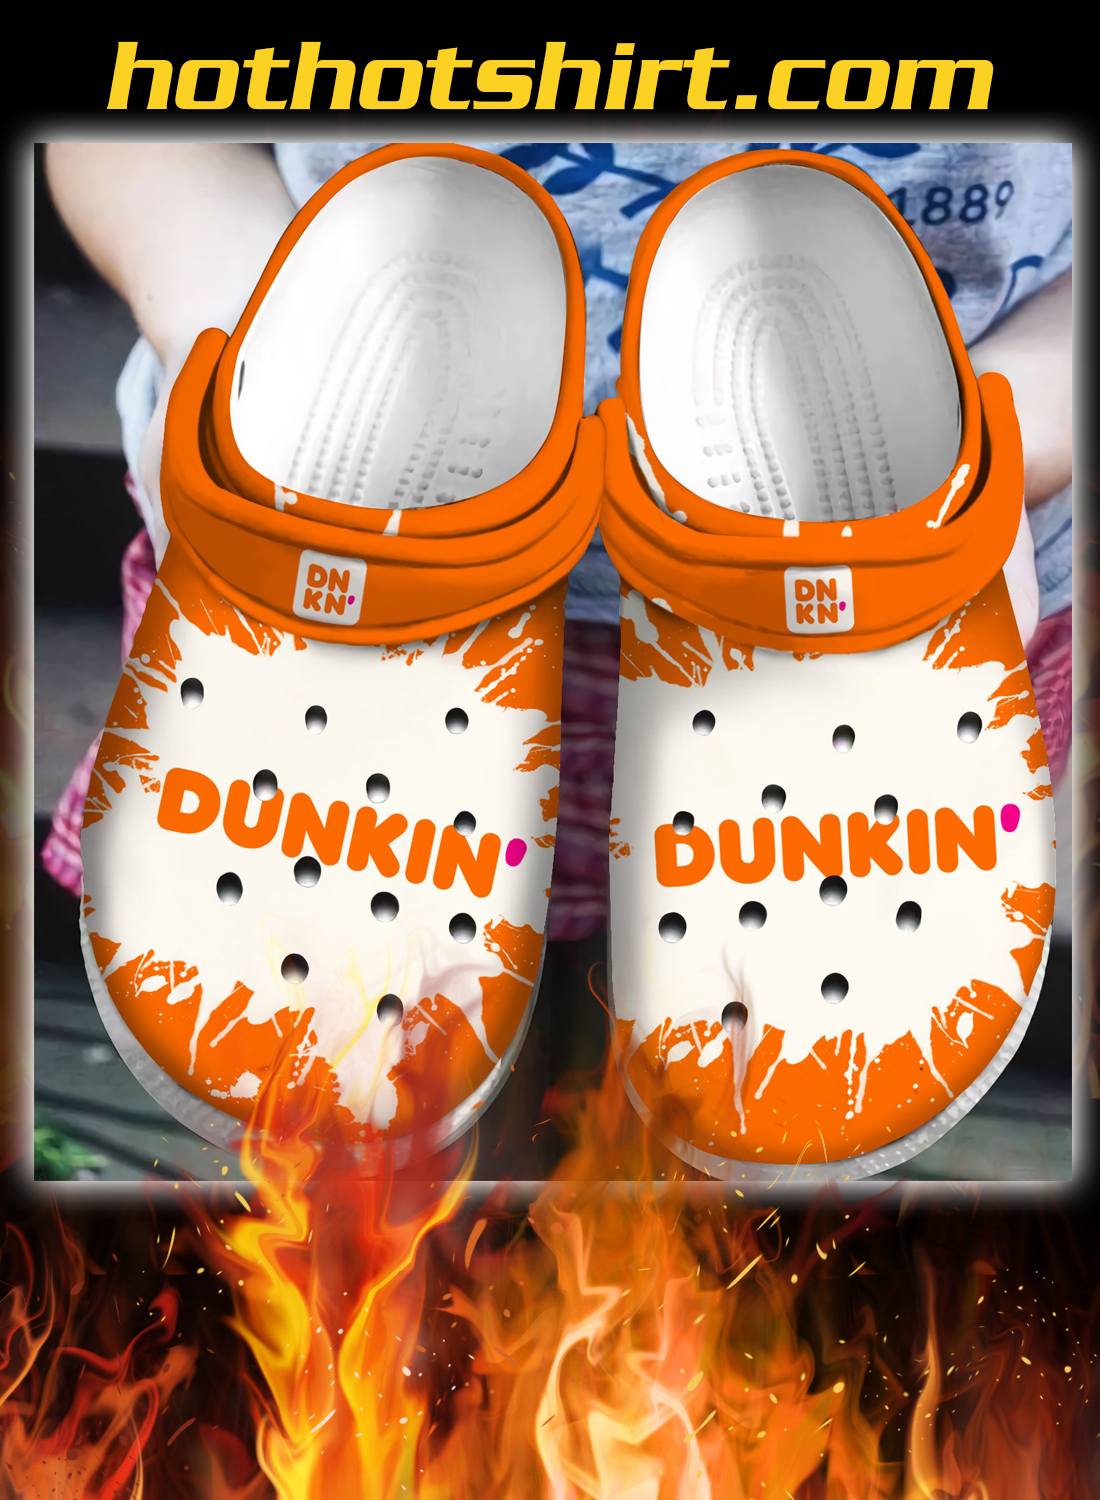 Dunkin' donuts crocband crocs shoes 1